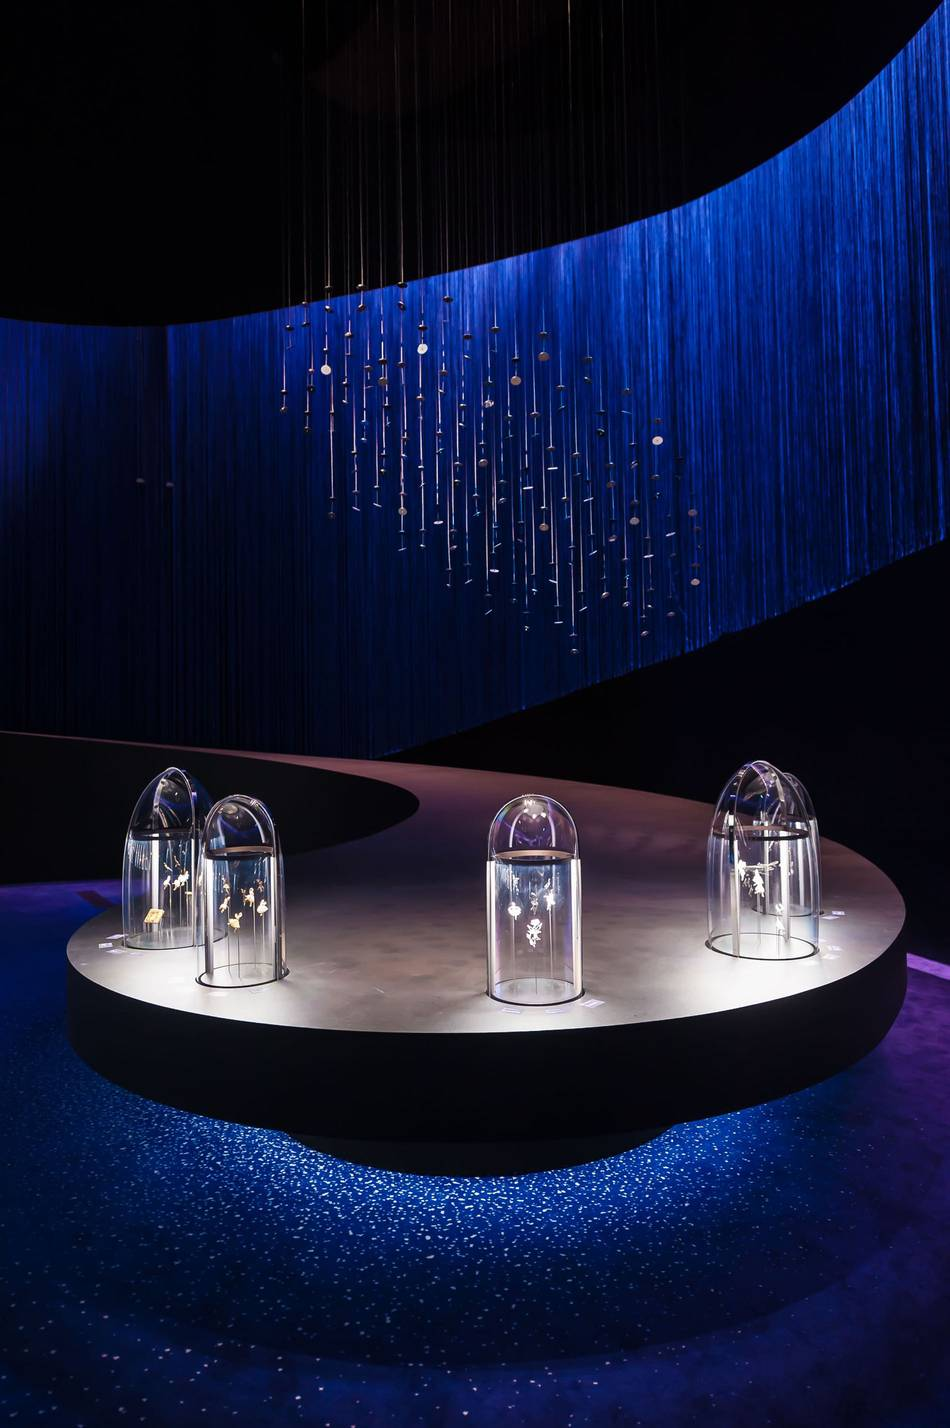 Van Cleef Amp Arpels Presents The Art And Science Of Gems In